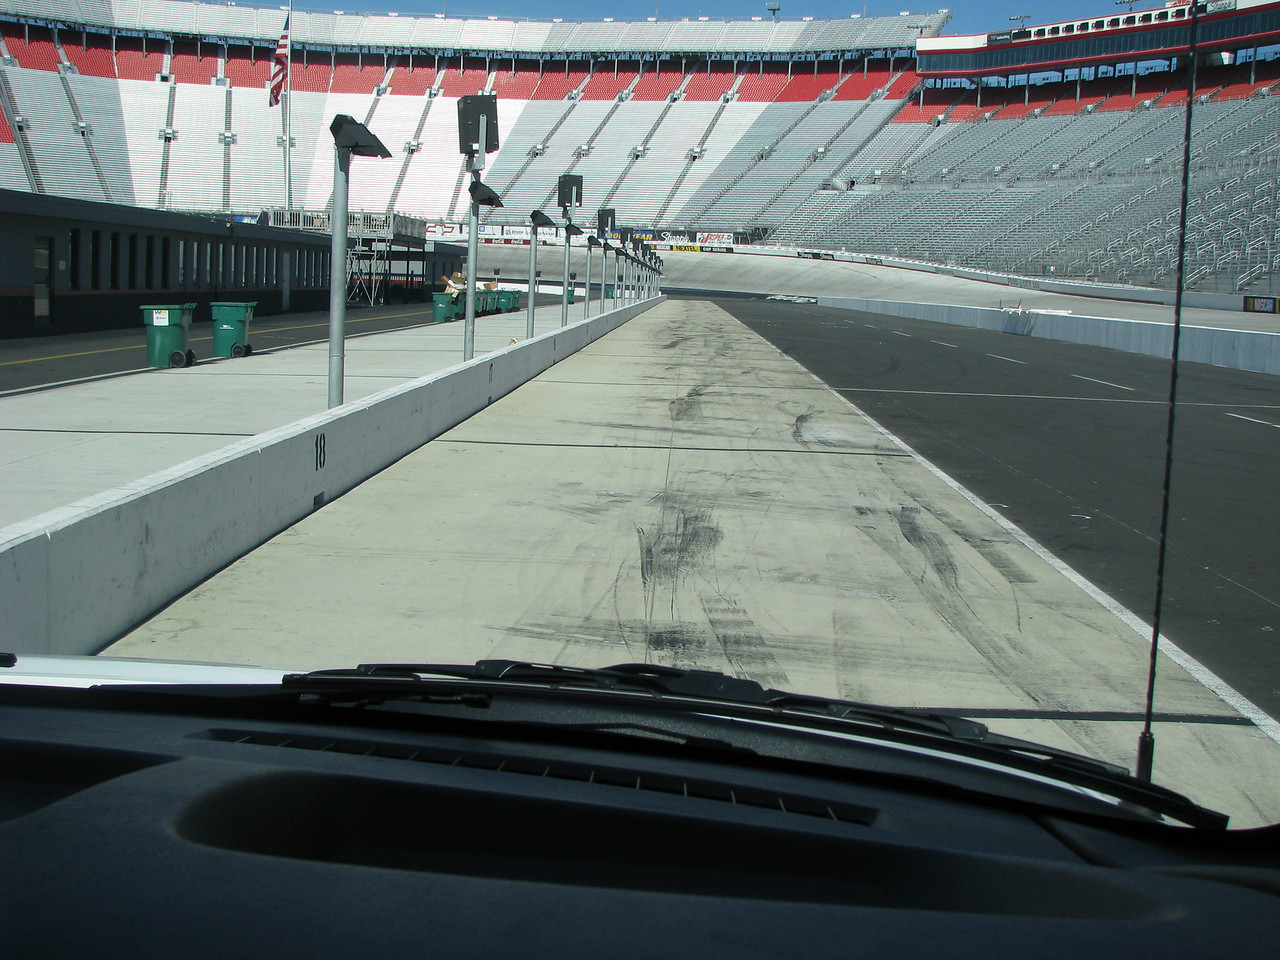 Coming down pit road